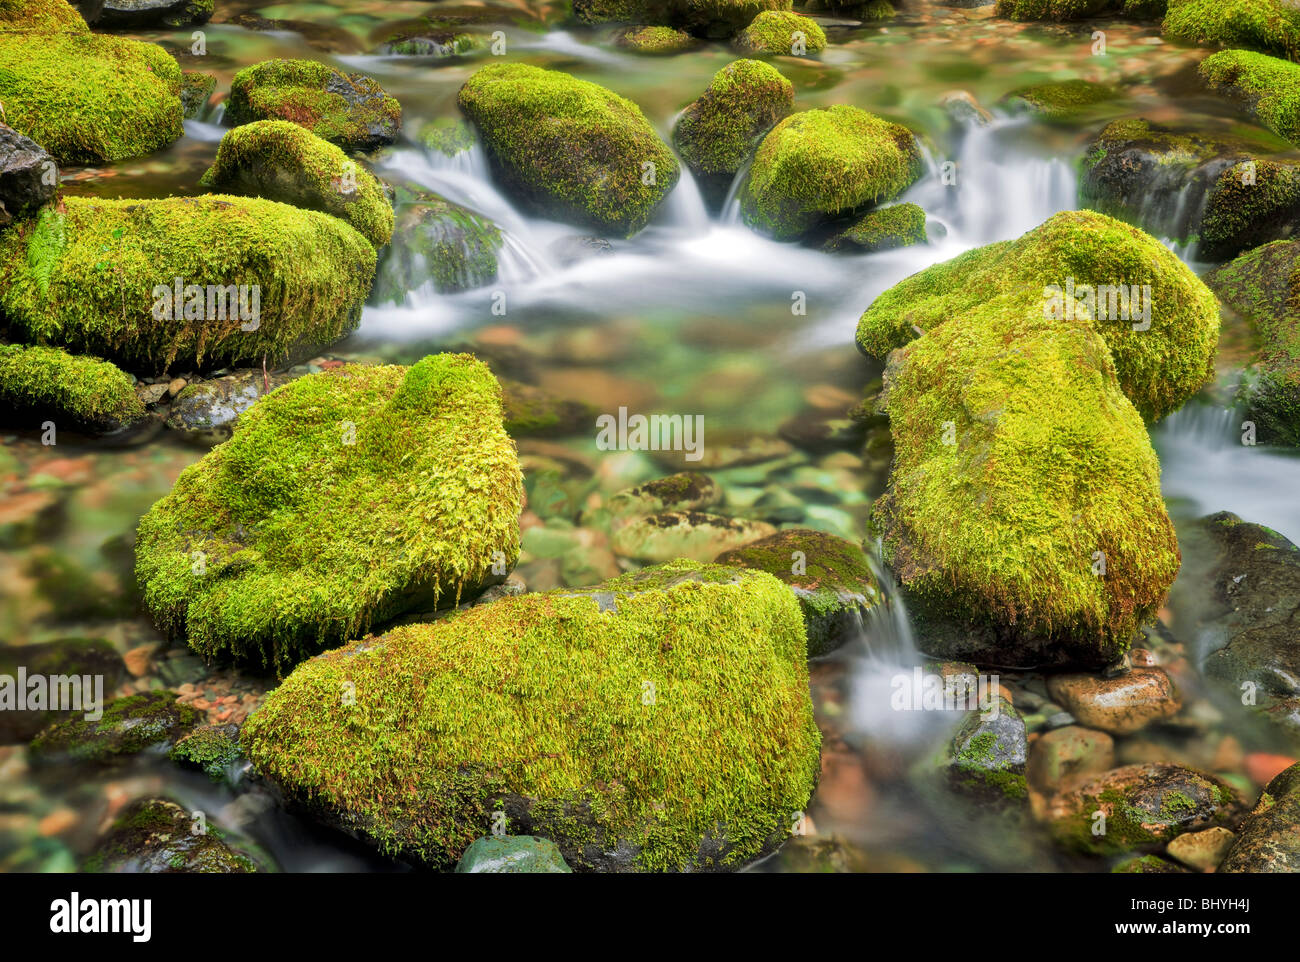 Moss covered rocks in small stream at Opal Creek Scenic Recreation Area, Oregon - Stock Image